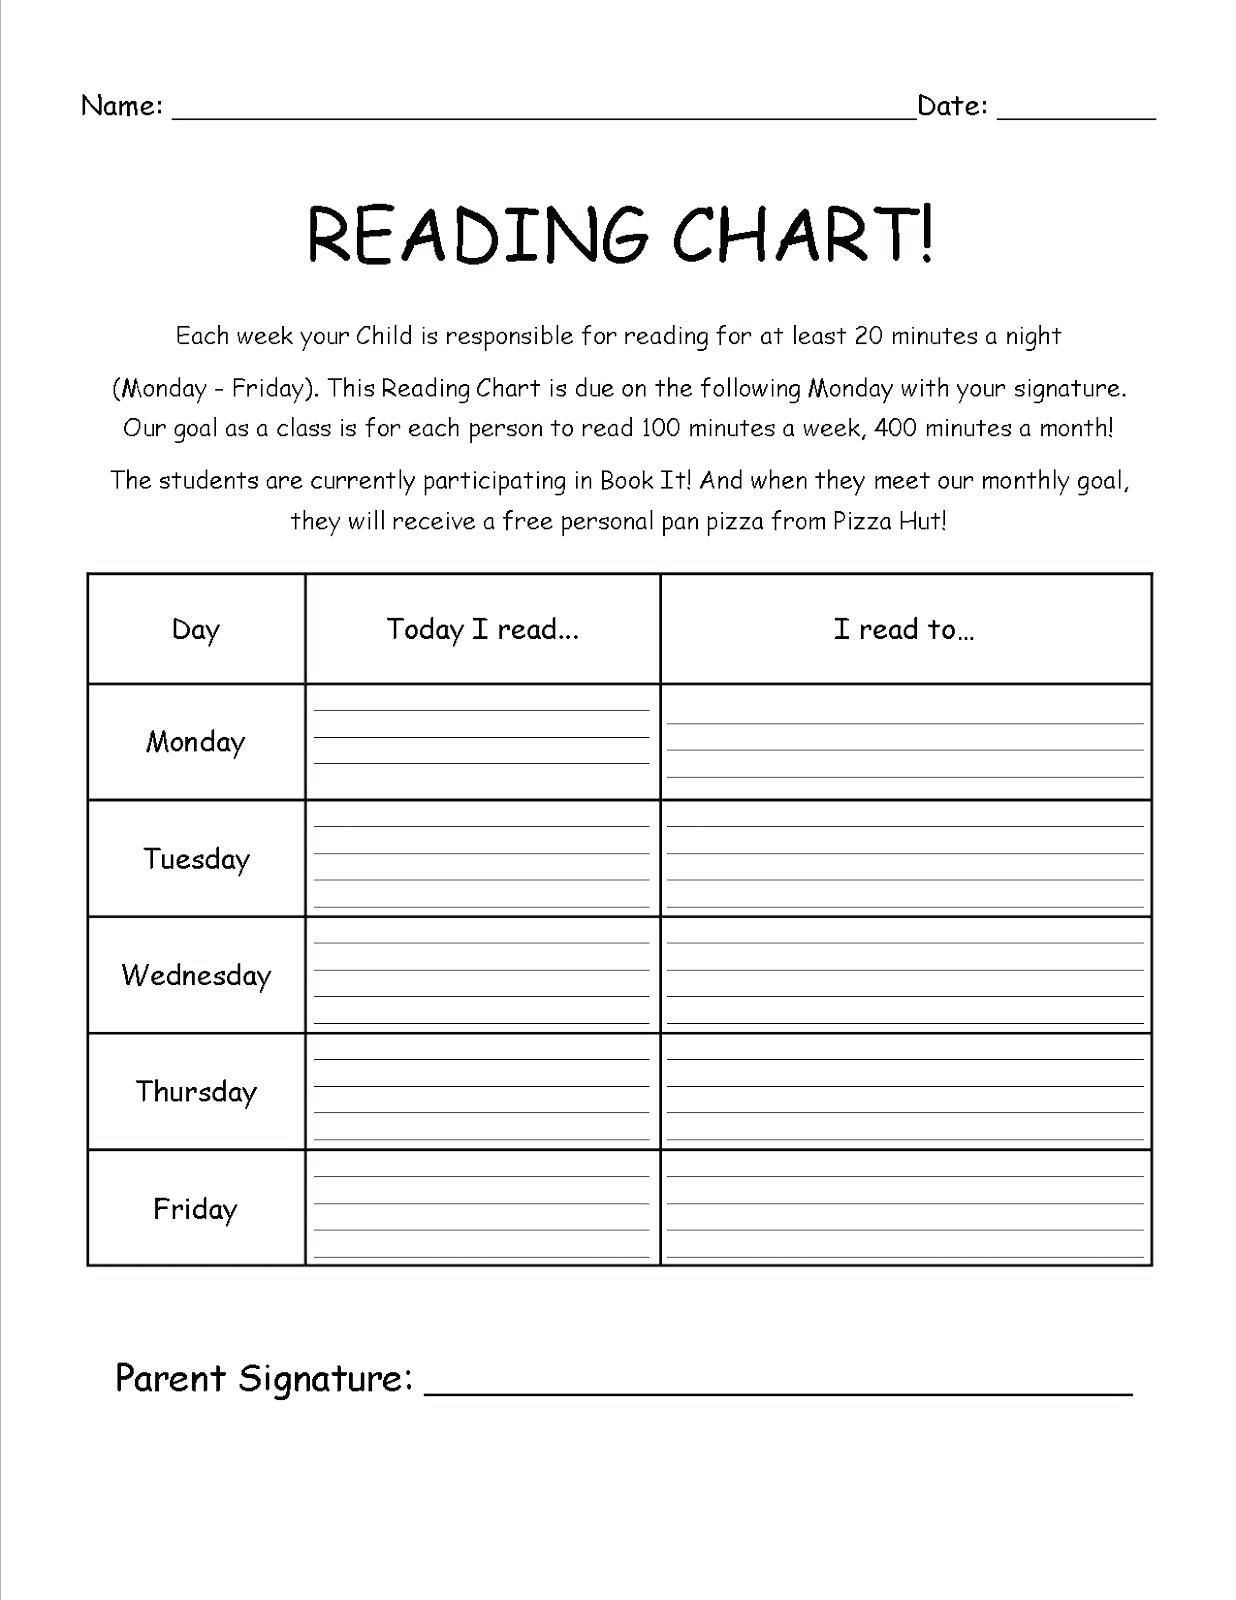 5th Grade Reading Comprehension Worksheets To Print Math